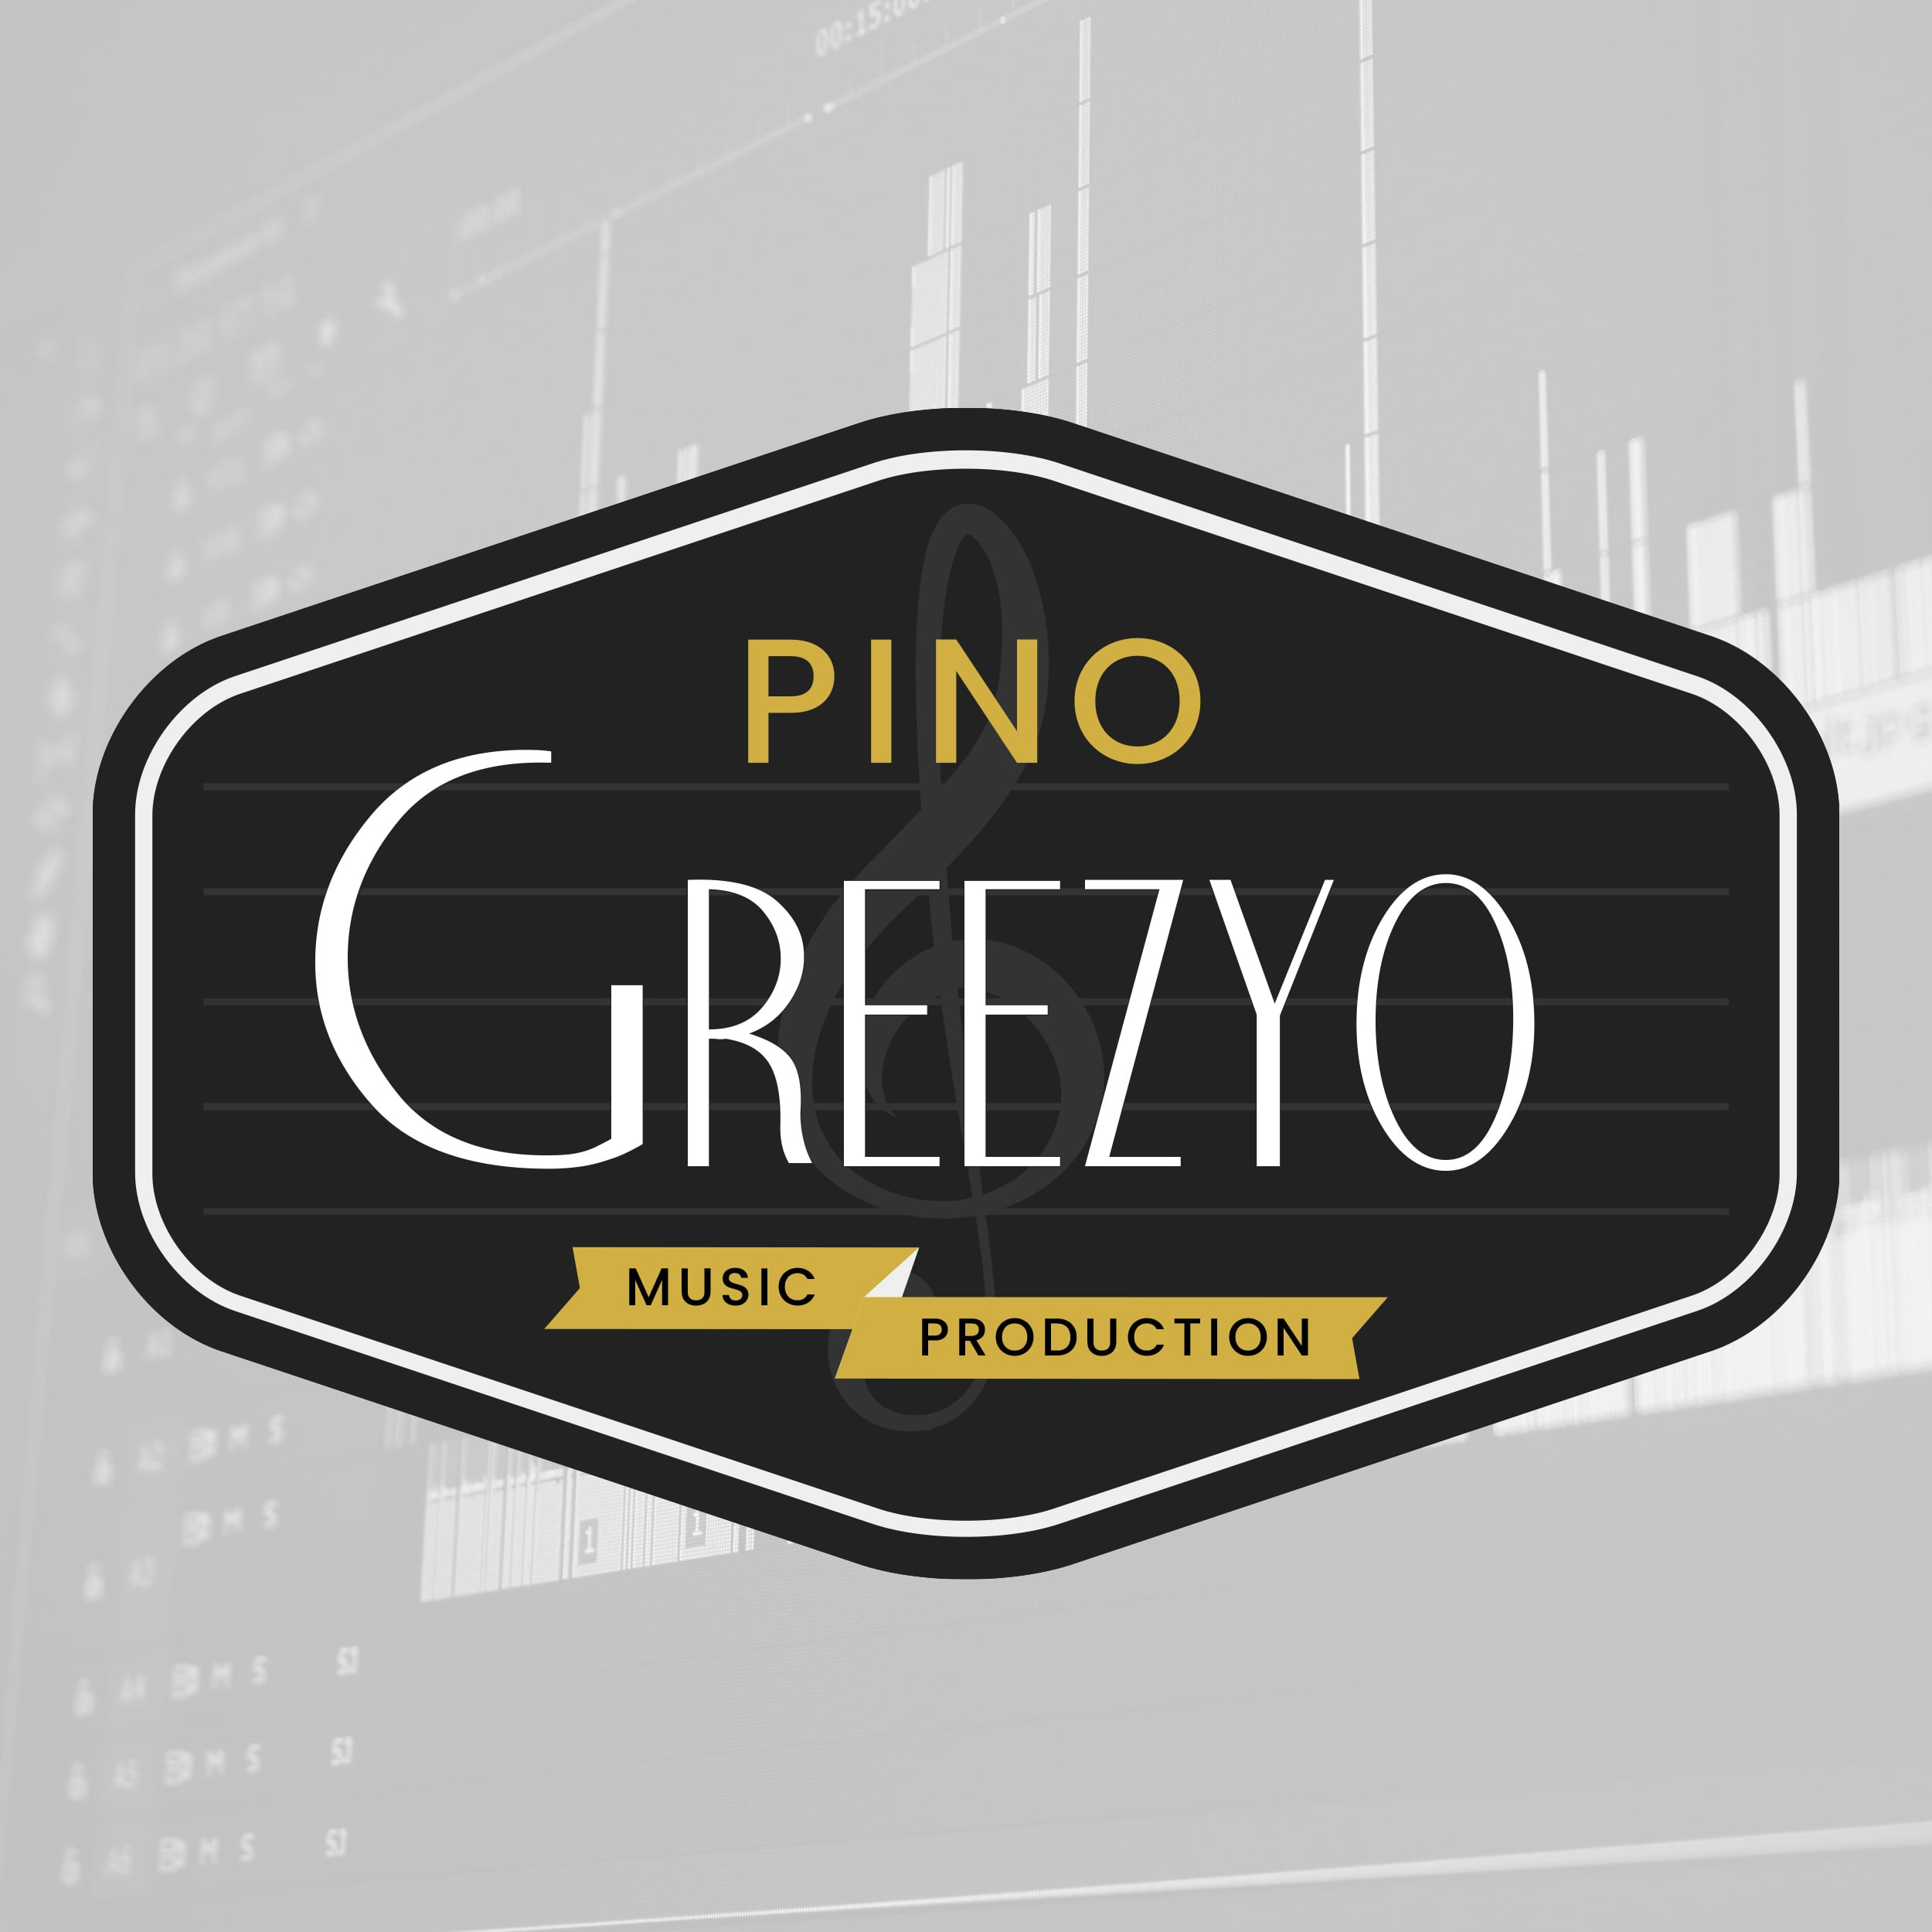 Pino Greezyo Custom Logo Design